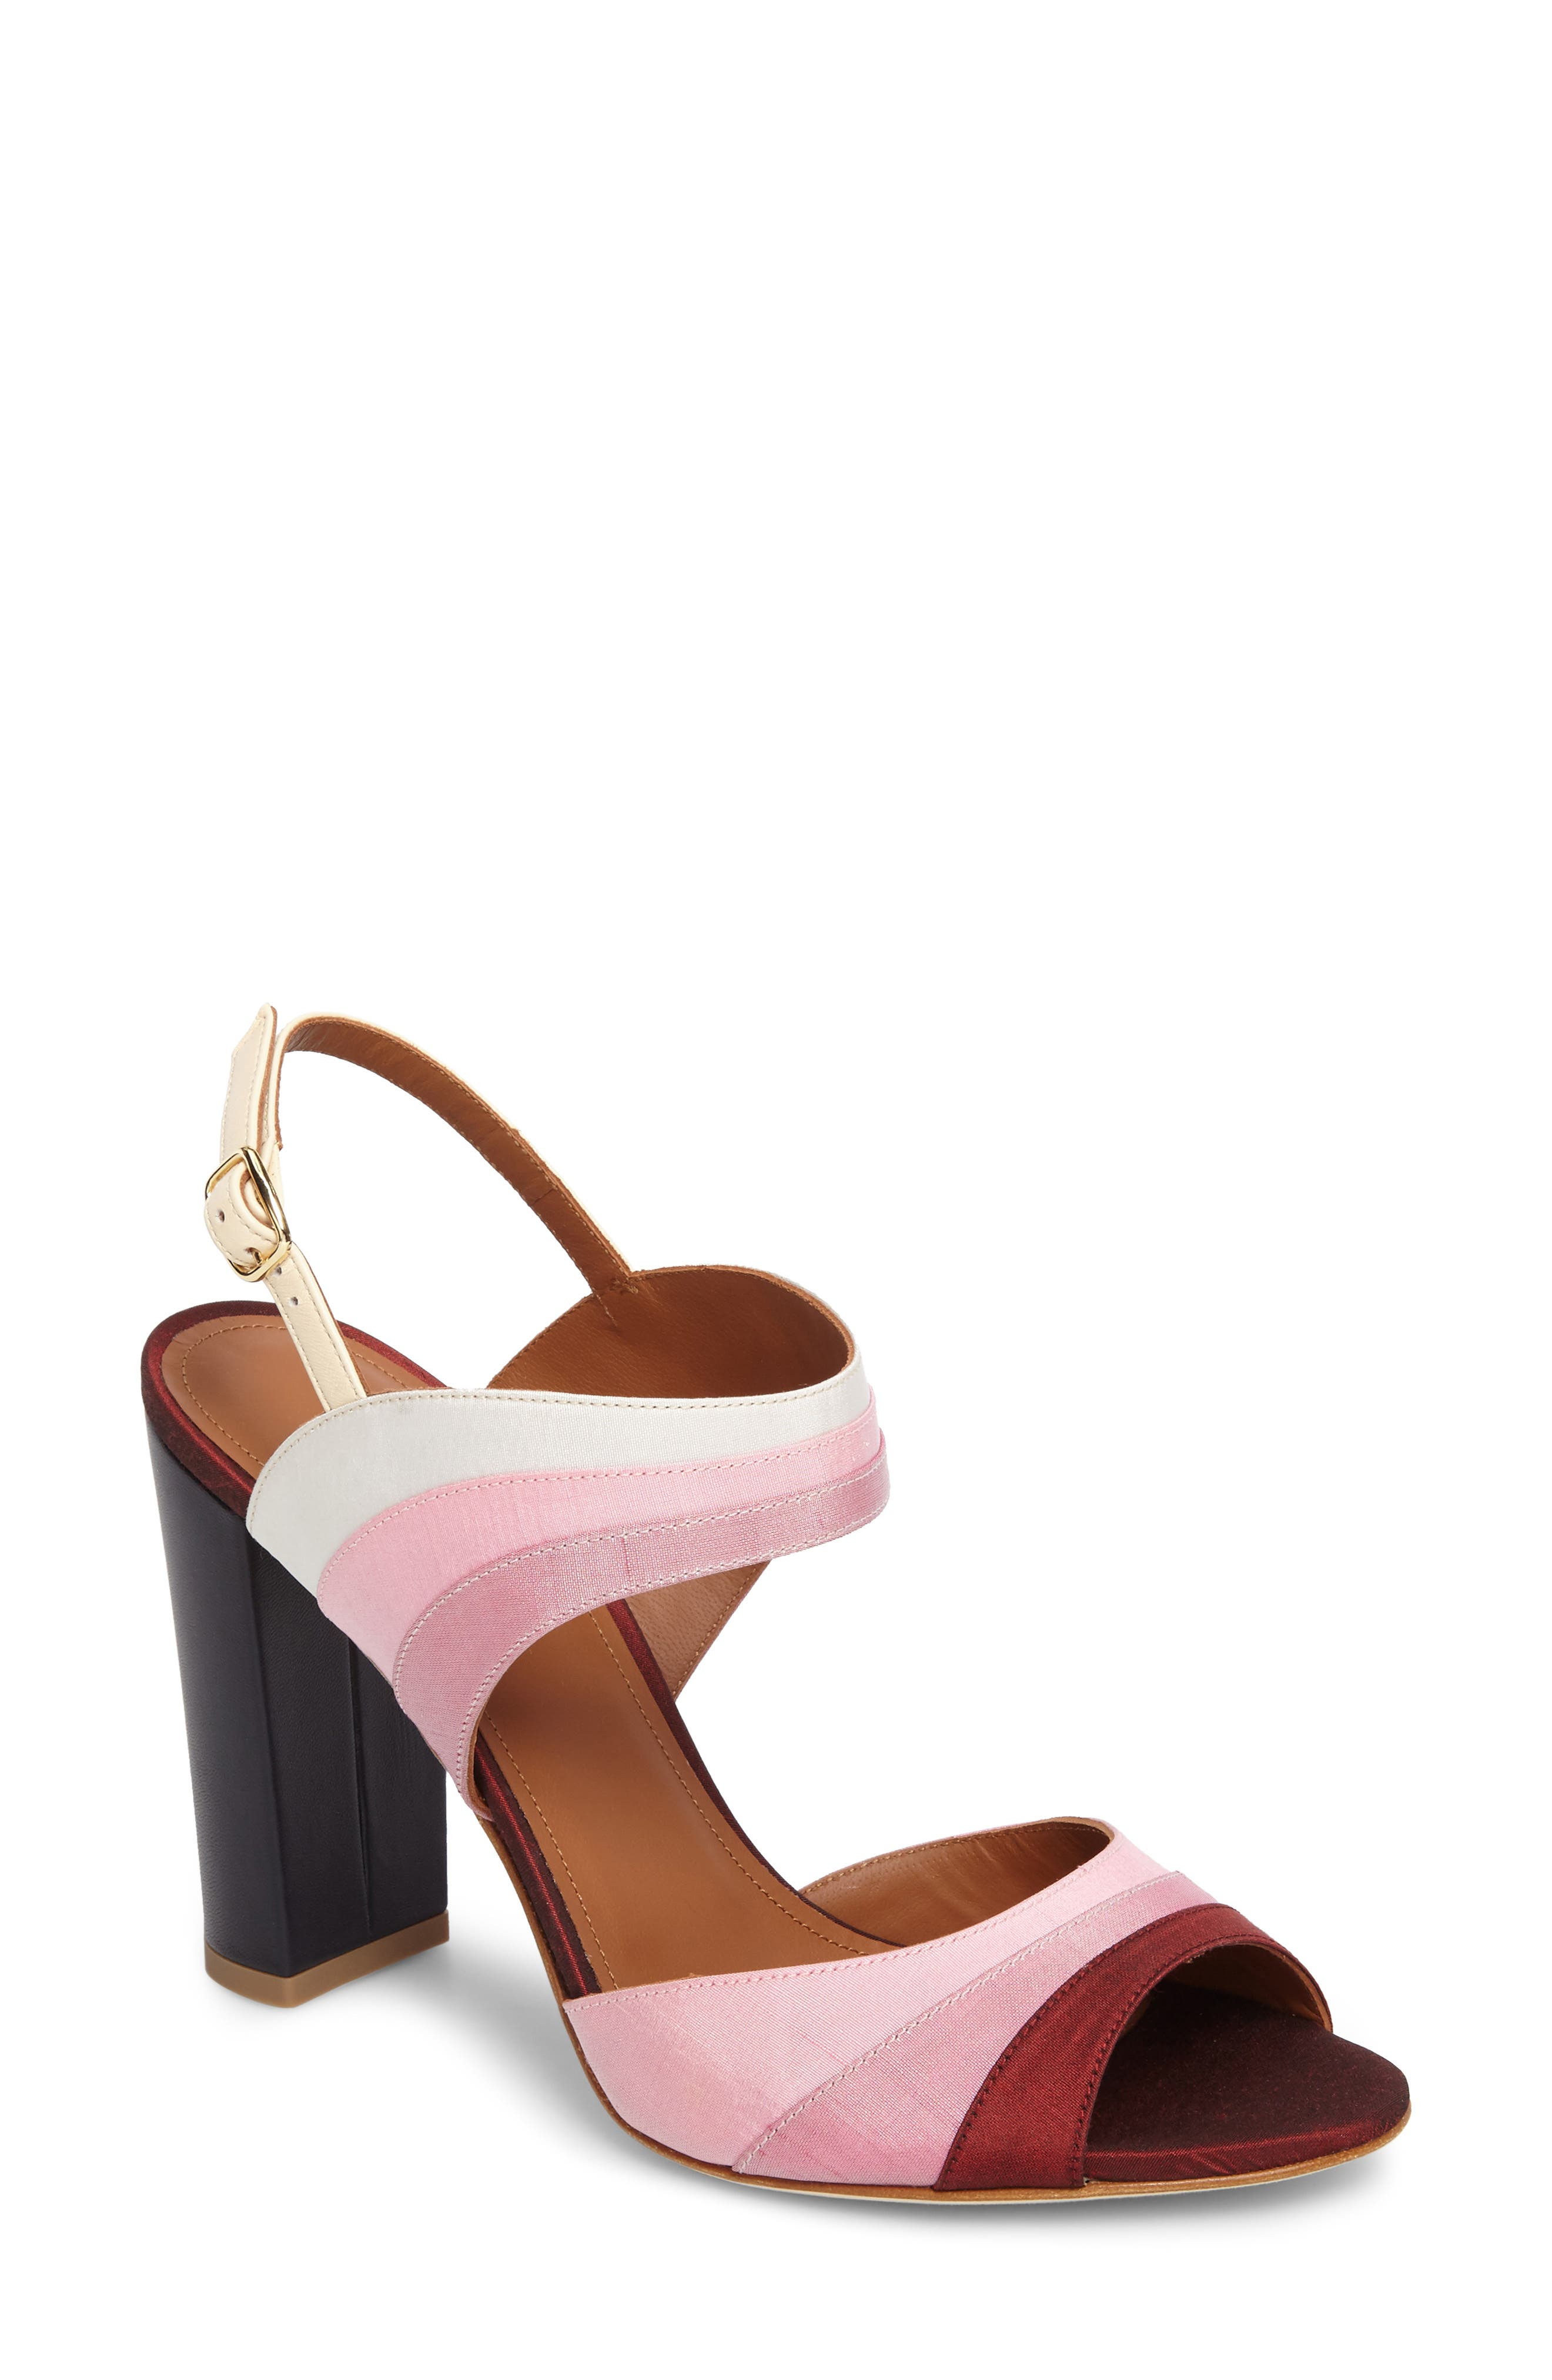 Anita Ombré Slingback Sandal,                         Main,                         color, Peach/ Rose/ Berry/ Wine